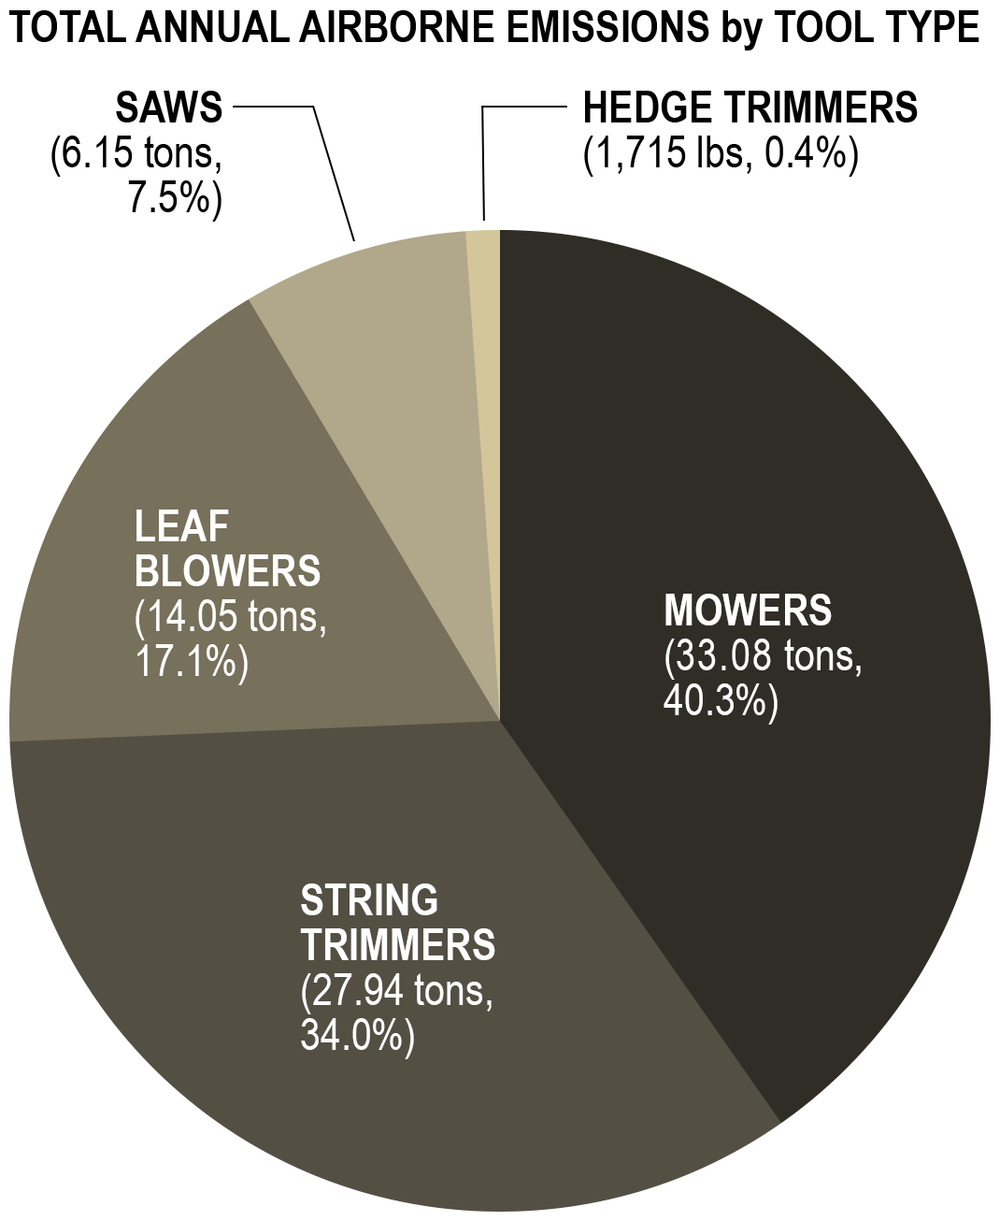 AGZA_GZ_Ojai_Pie_Charts_02_Tools_1070.png